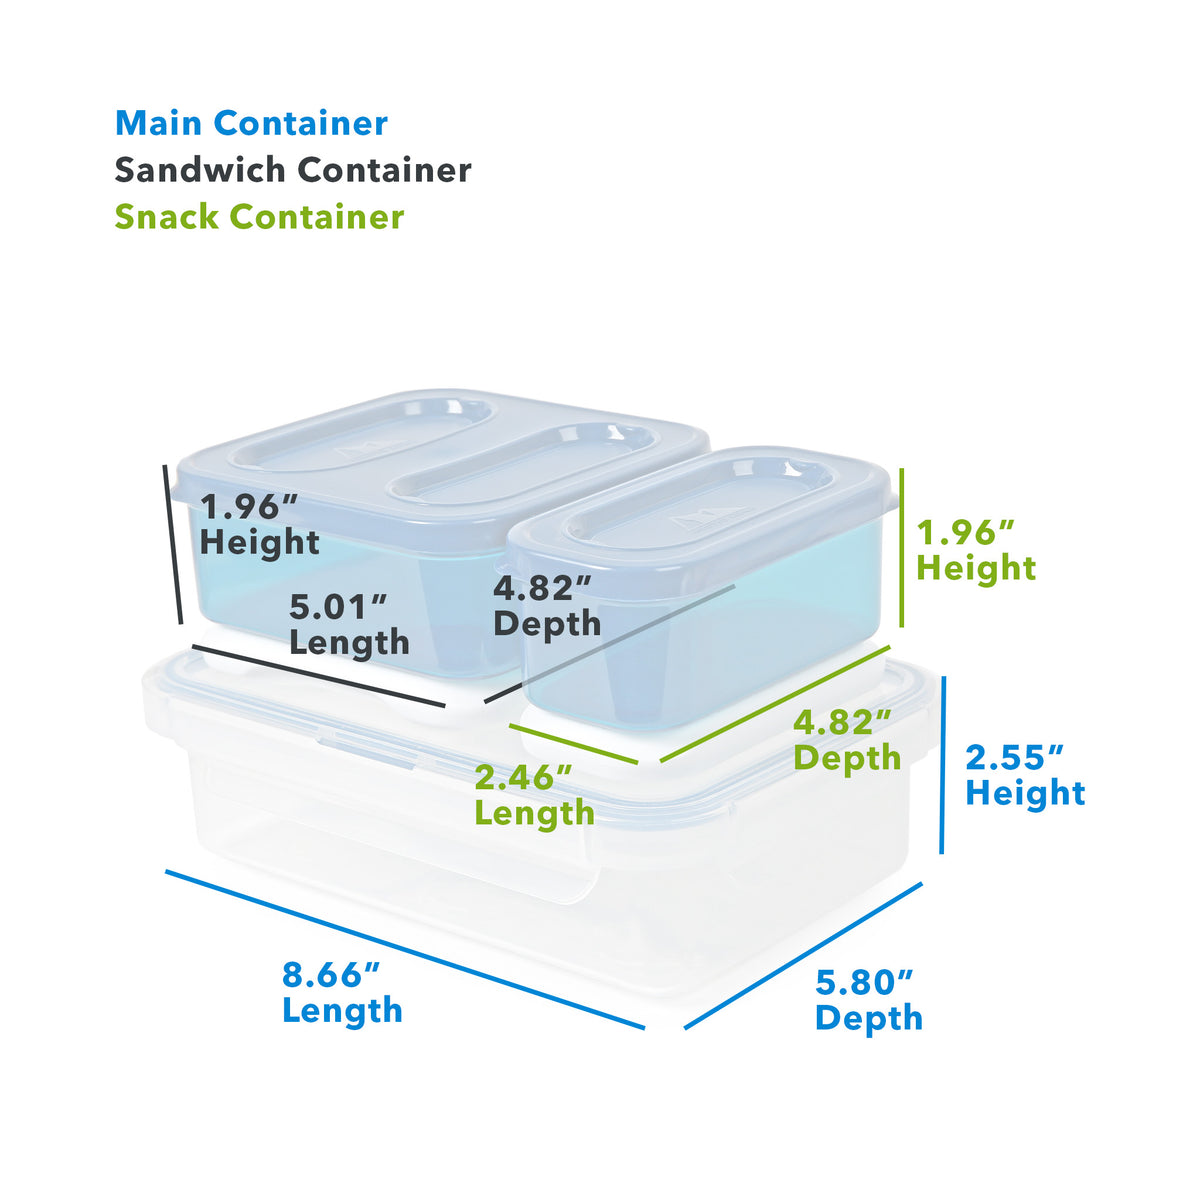 "High Performance Meal Prep Day Pack - Blue - Main Container (L x D x H) 8.66"" x 5.80"" x 2.55"", Sandwich Container : (L x D x H) 5.01"" x 4.82"" x 1.96"", Snack Container: (L x D x H) 2.46"" x 4.82"" x 1.96"""